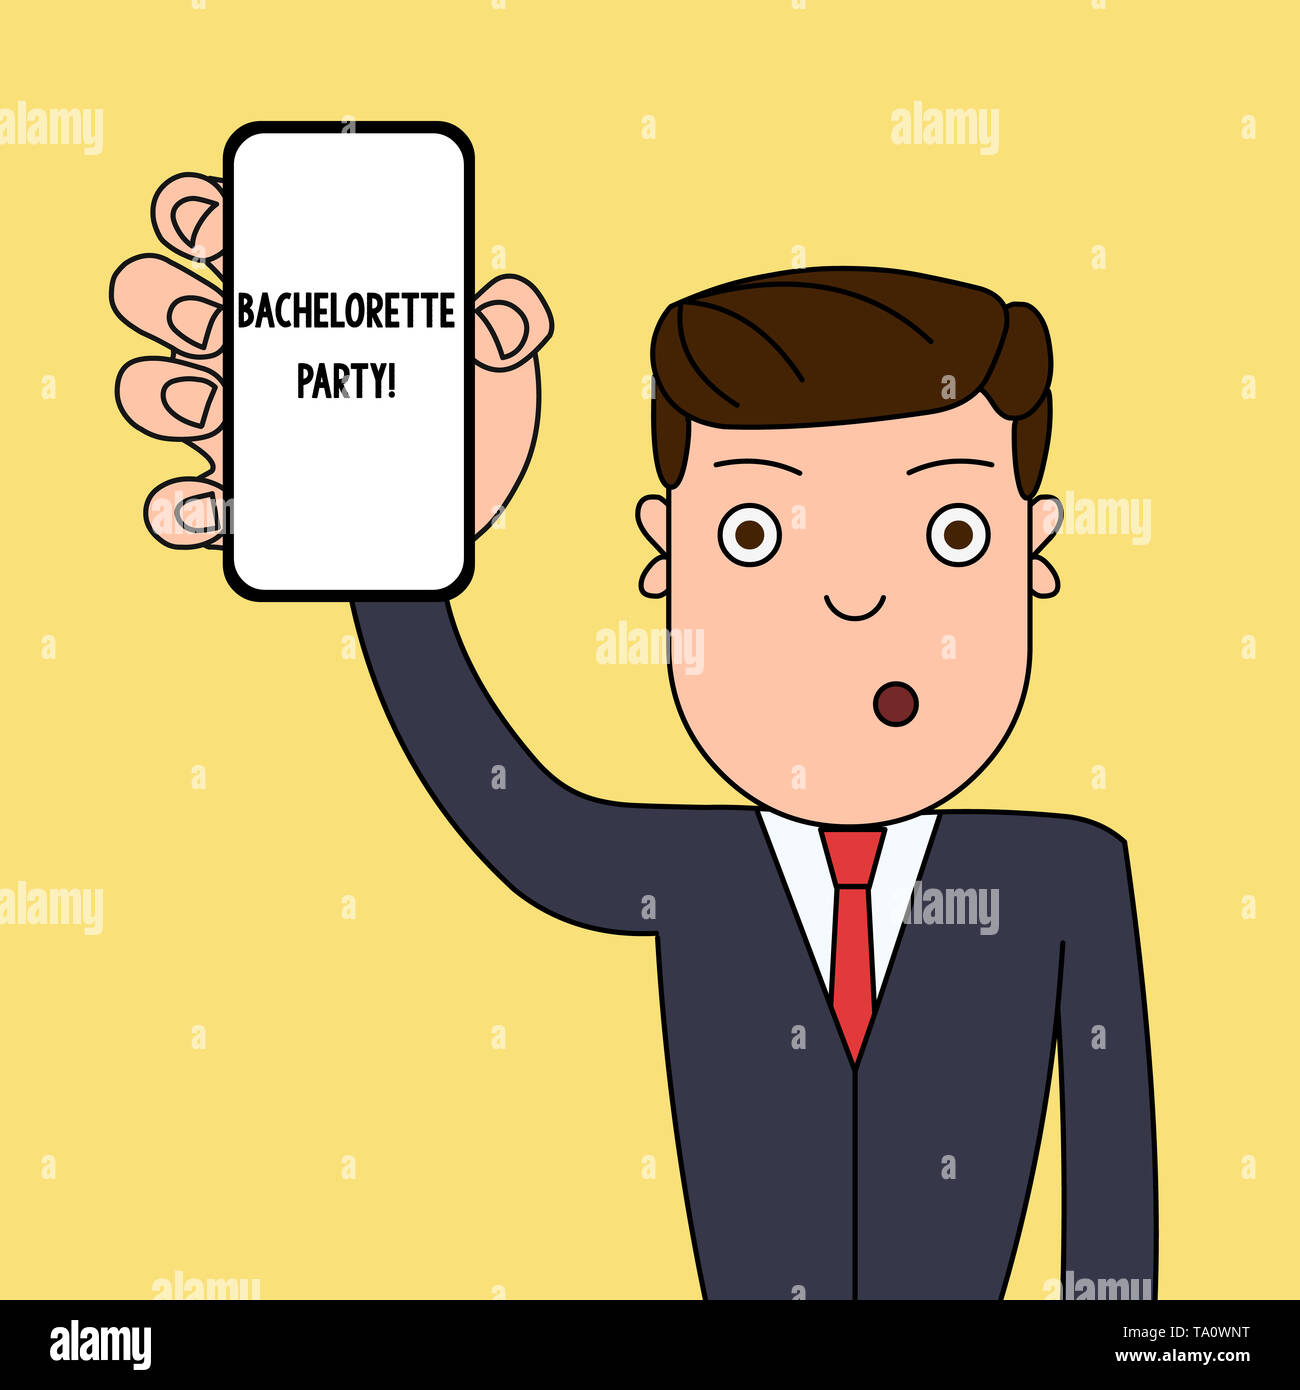 Writing note showing Bachelorette Party. Business concept for a party given for a woanalysis who is about to get married Man Holding Vertical Smartpho - Stock Image